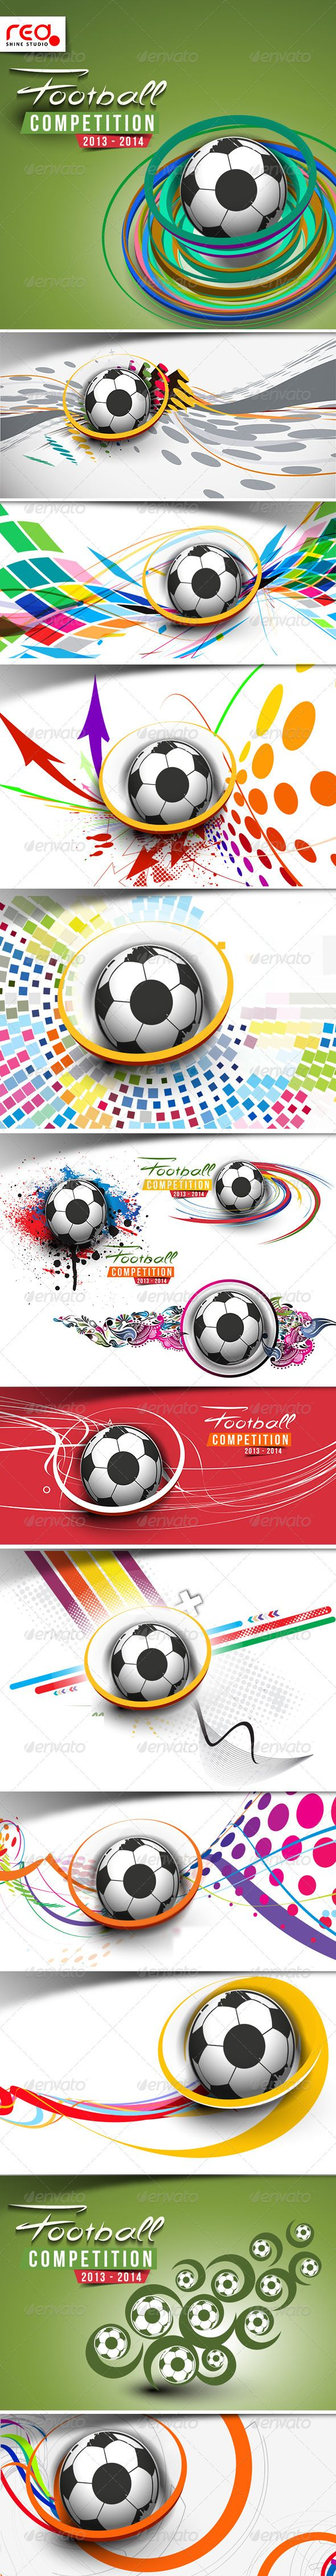 Realistic Graphic DOWNLOAD (.ai, .psd) :: http://sourcecodes.pro/pinterest-itmid-1007873565i.html ... Football Background ...  abastract, background, brazil, championship, competition, crowd, element, fan, floral, flyer, football, grunge, halftone, icon, line, mosaic, poster, soccer, sport, symbol, templates, wave, world cup  ... Realistic Photo Graphic Print Obejct Business Web Elements Illustration Design Templates ... DOWNLOAD :: http://sourcecodes.pro/pinterest-itmid-1007873565i.html